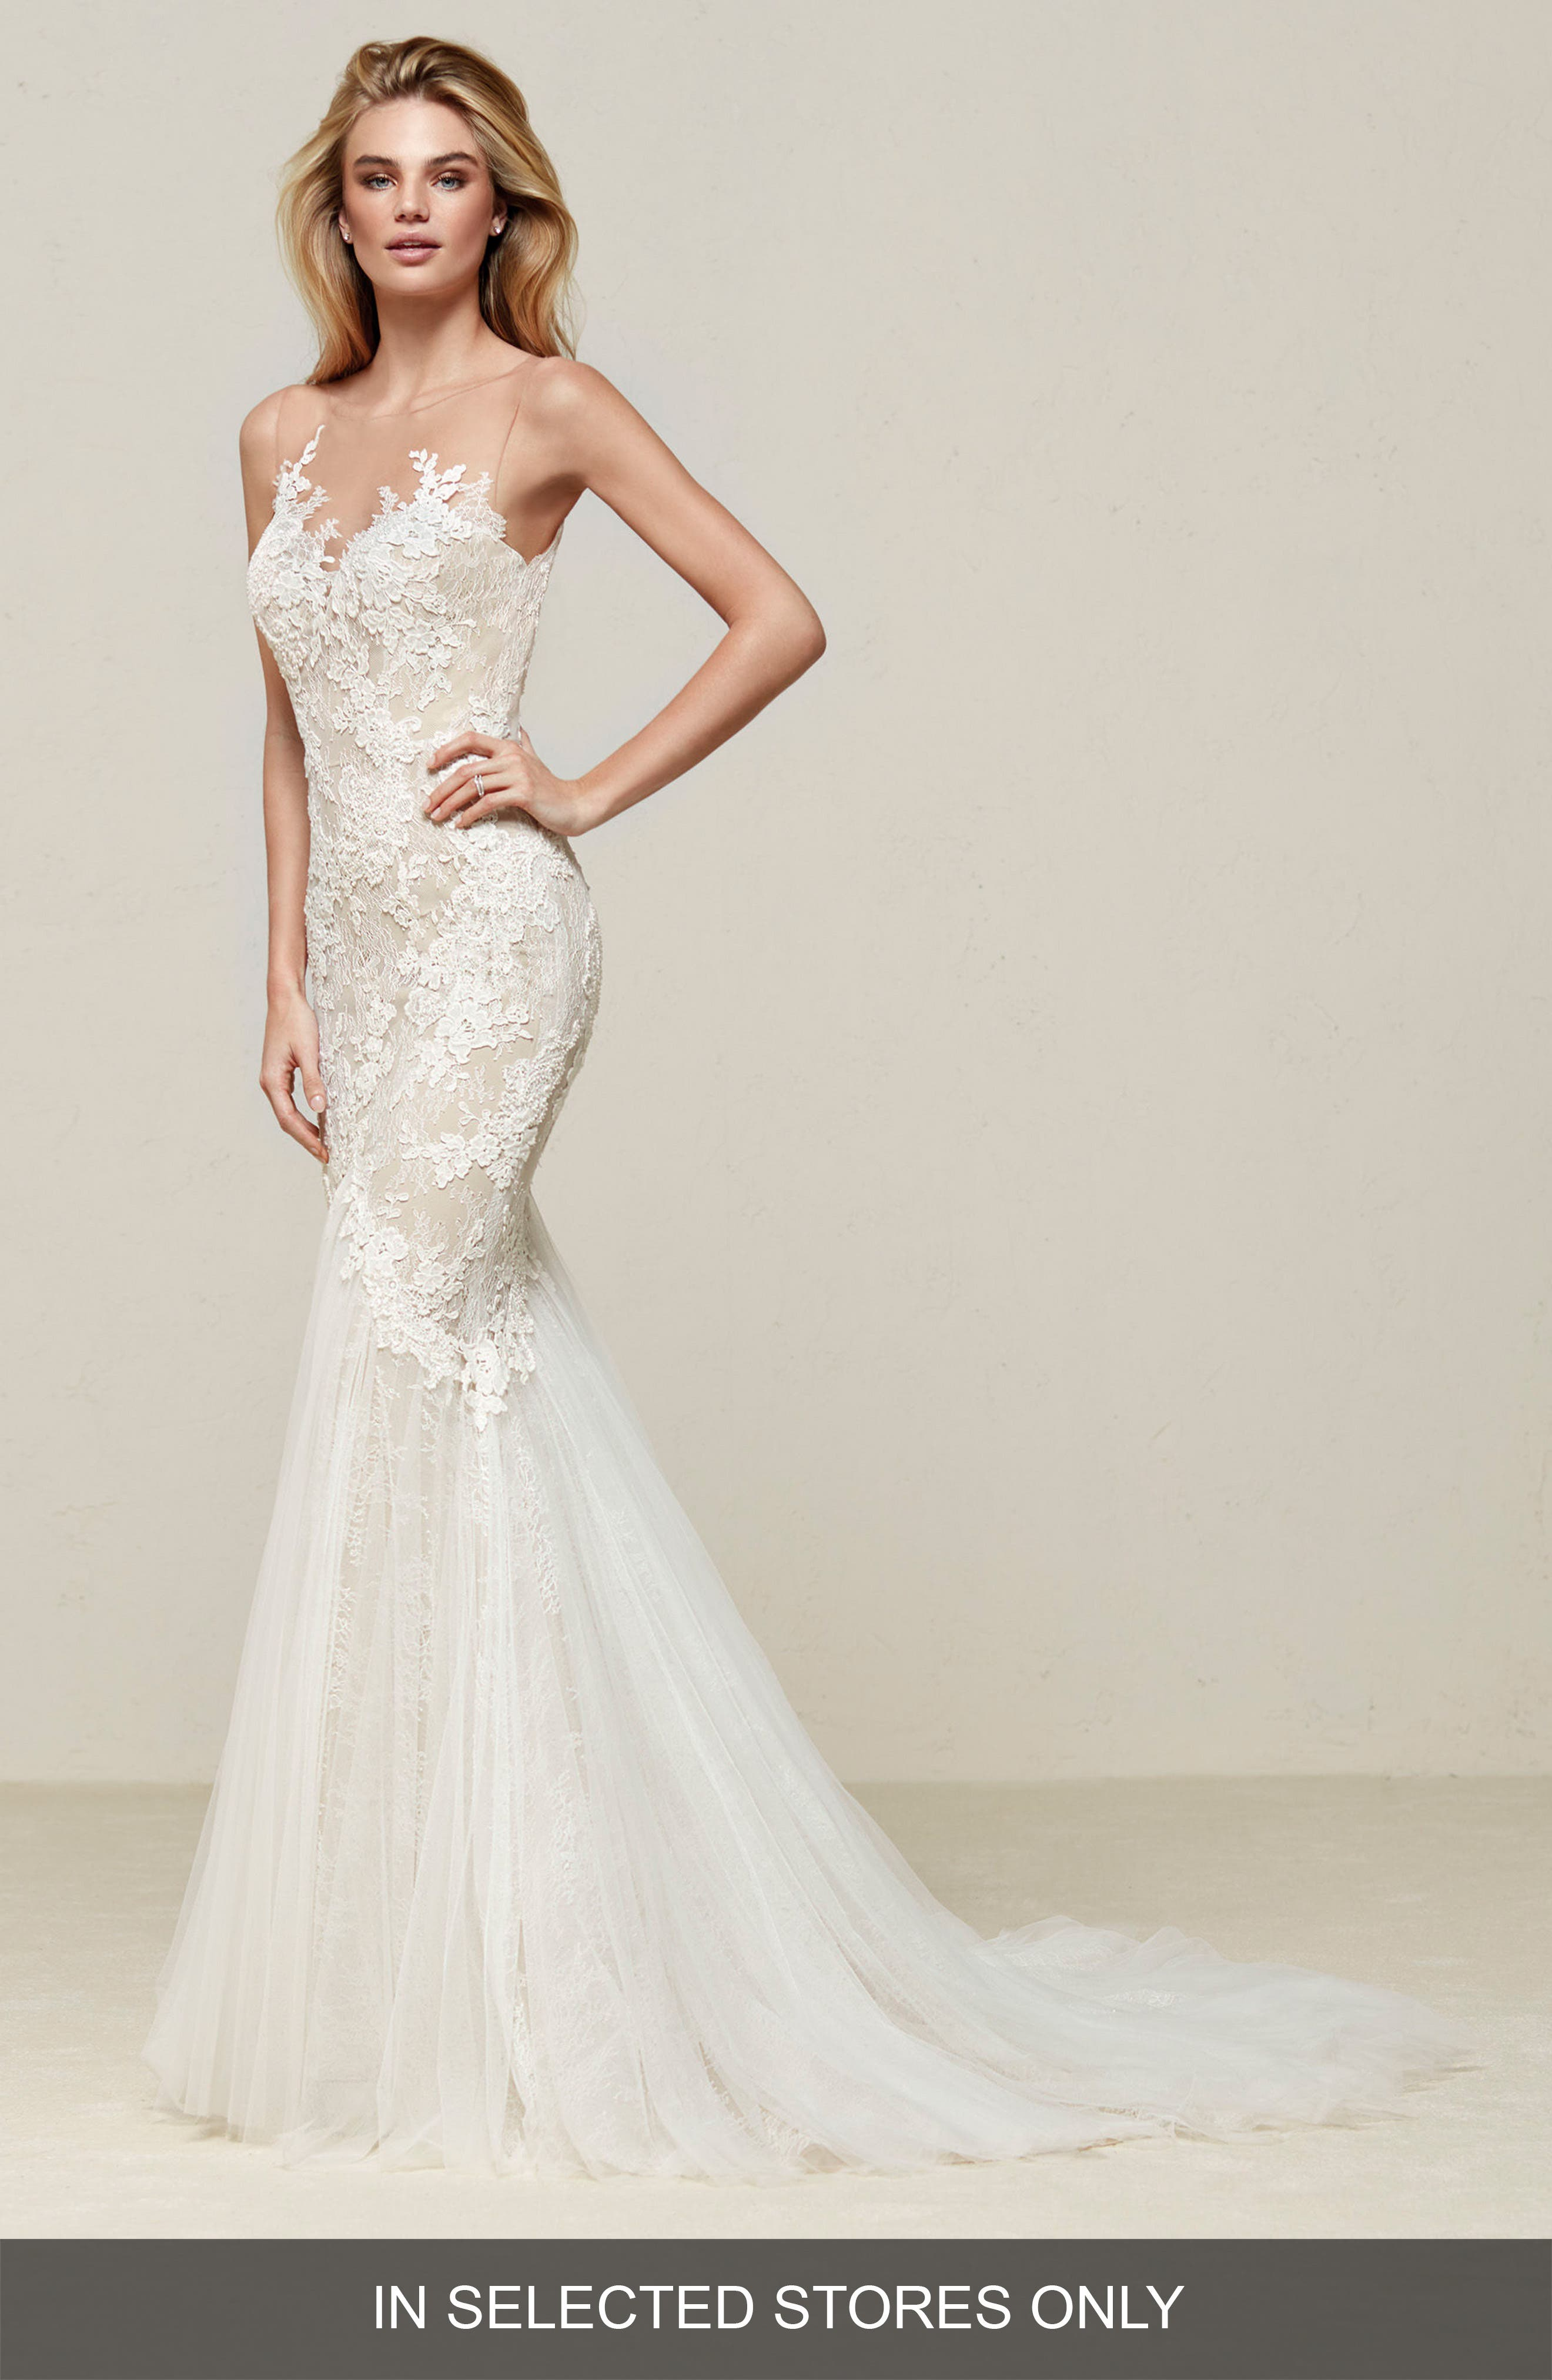 Alternate Image 1 Selected - Pronovias Drinam Lace & Tulle Mermaid Gown